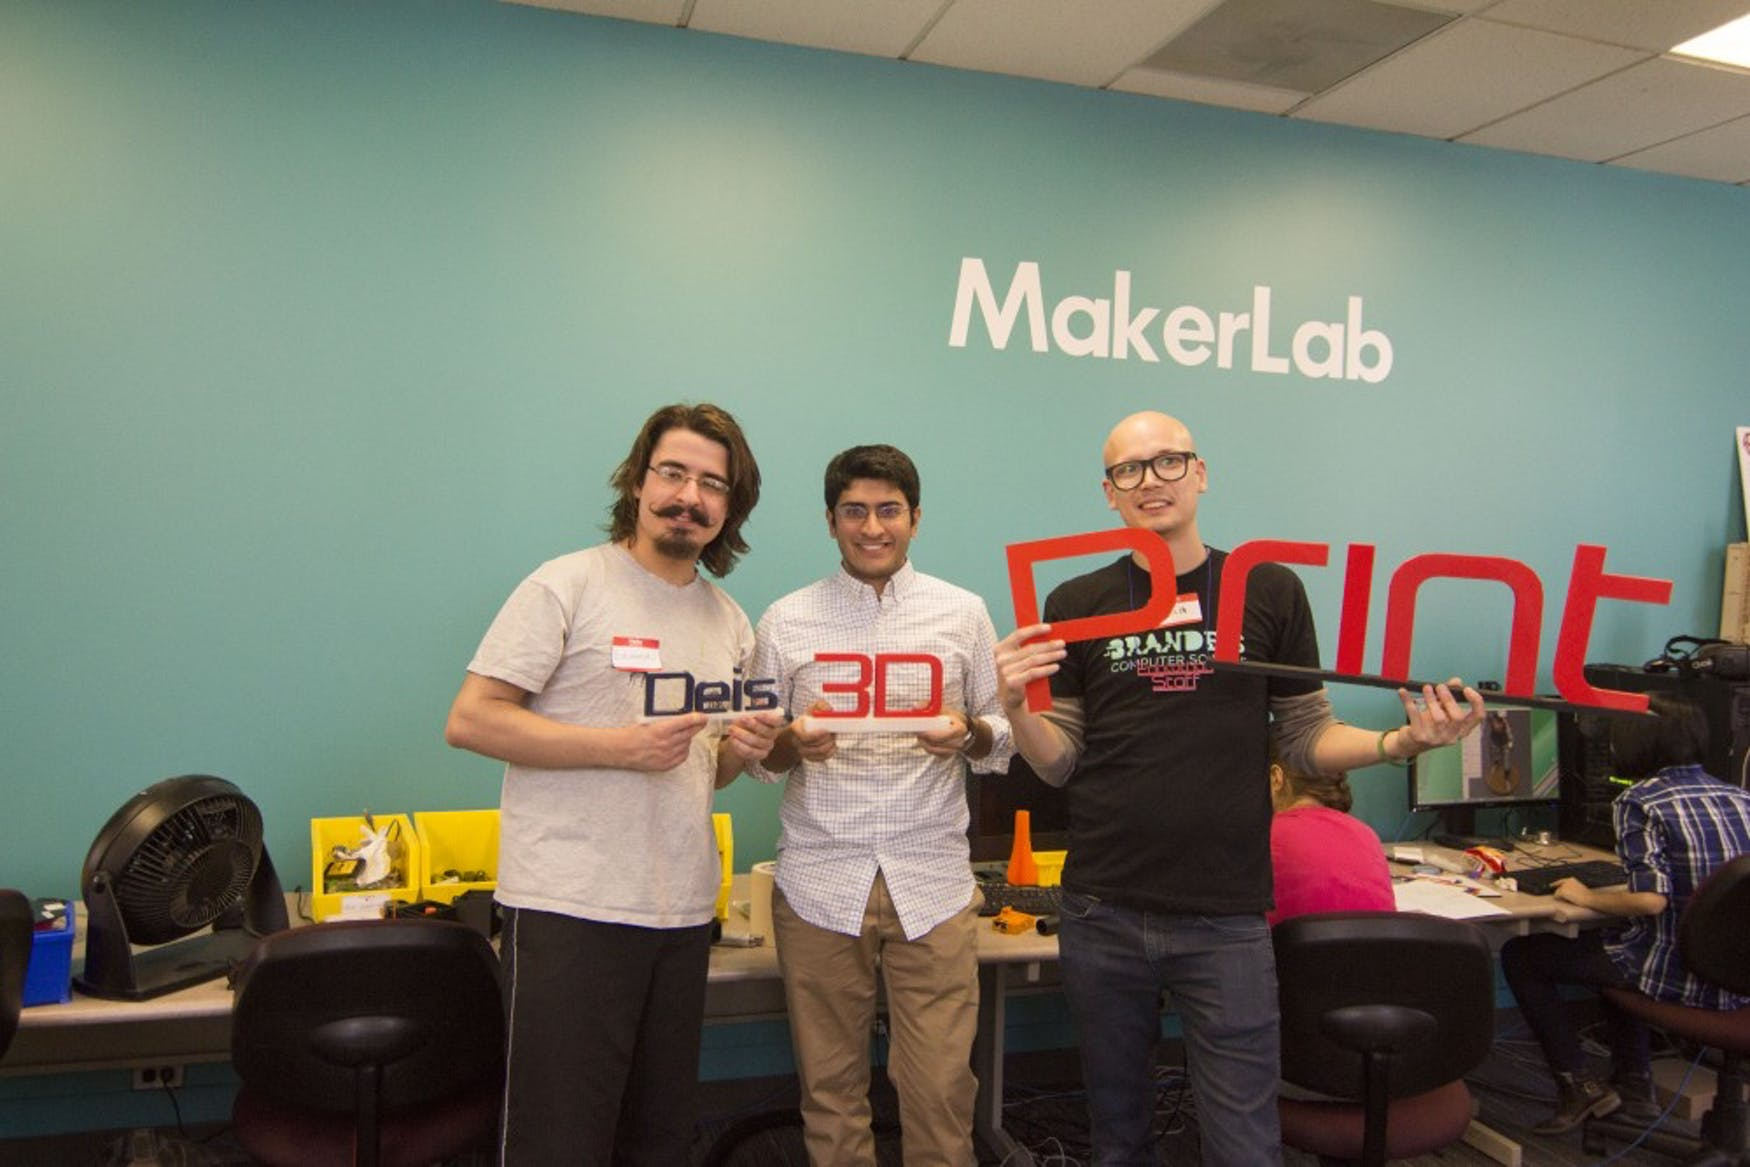 THE MASTER MAKERS: Deis3D members, (left to right) president Eduardo Beltrame '15, vice president Samir Undavia '17 and faculty adviser Ian Roy '05 (Research Technology Project Lead) hold some of the club's 3D creations in the MakerLab.